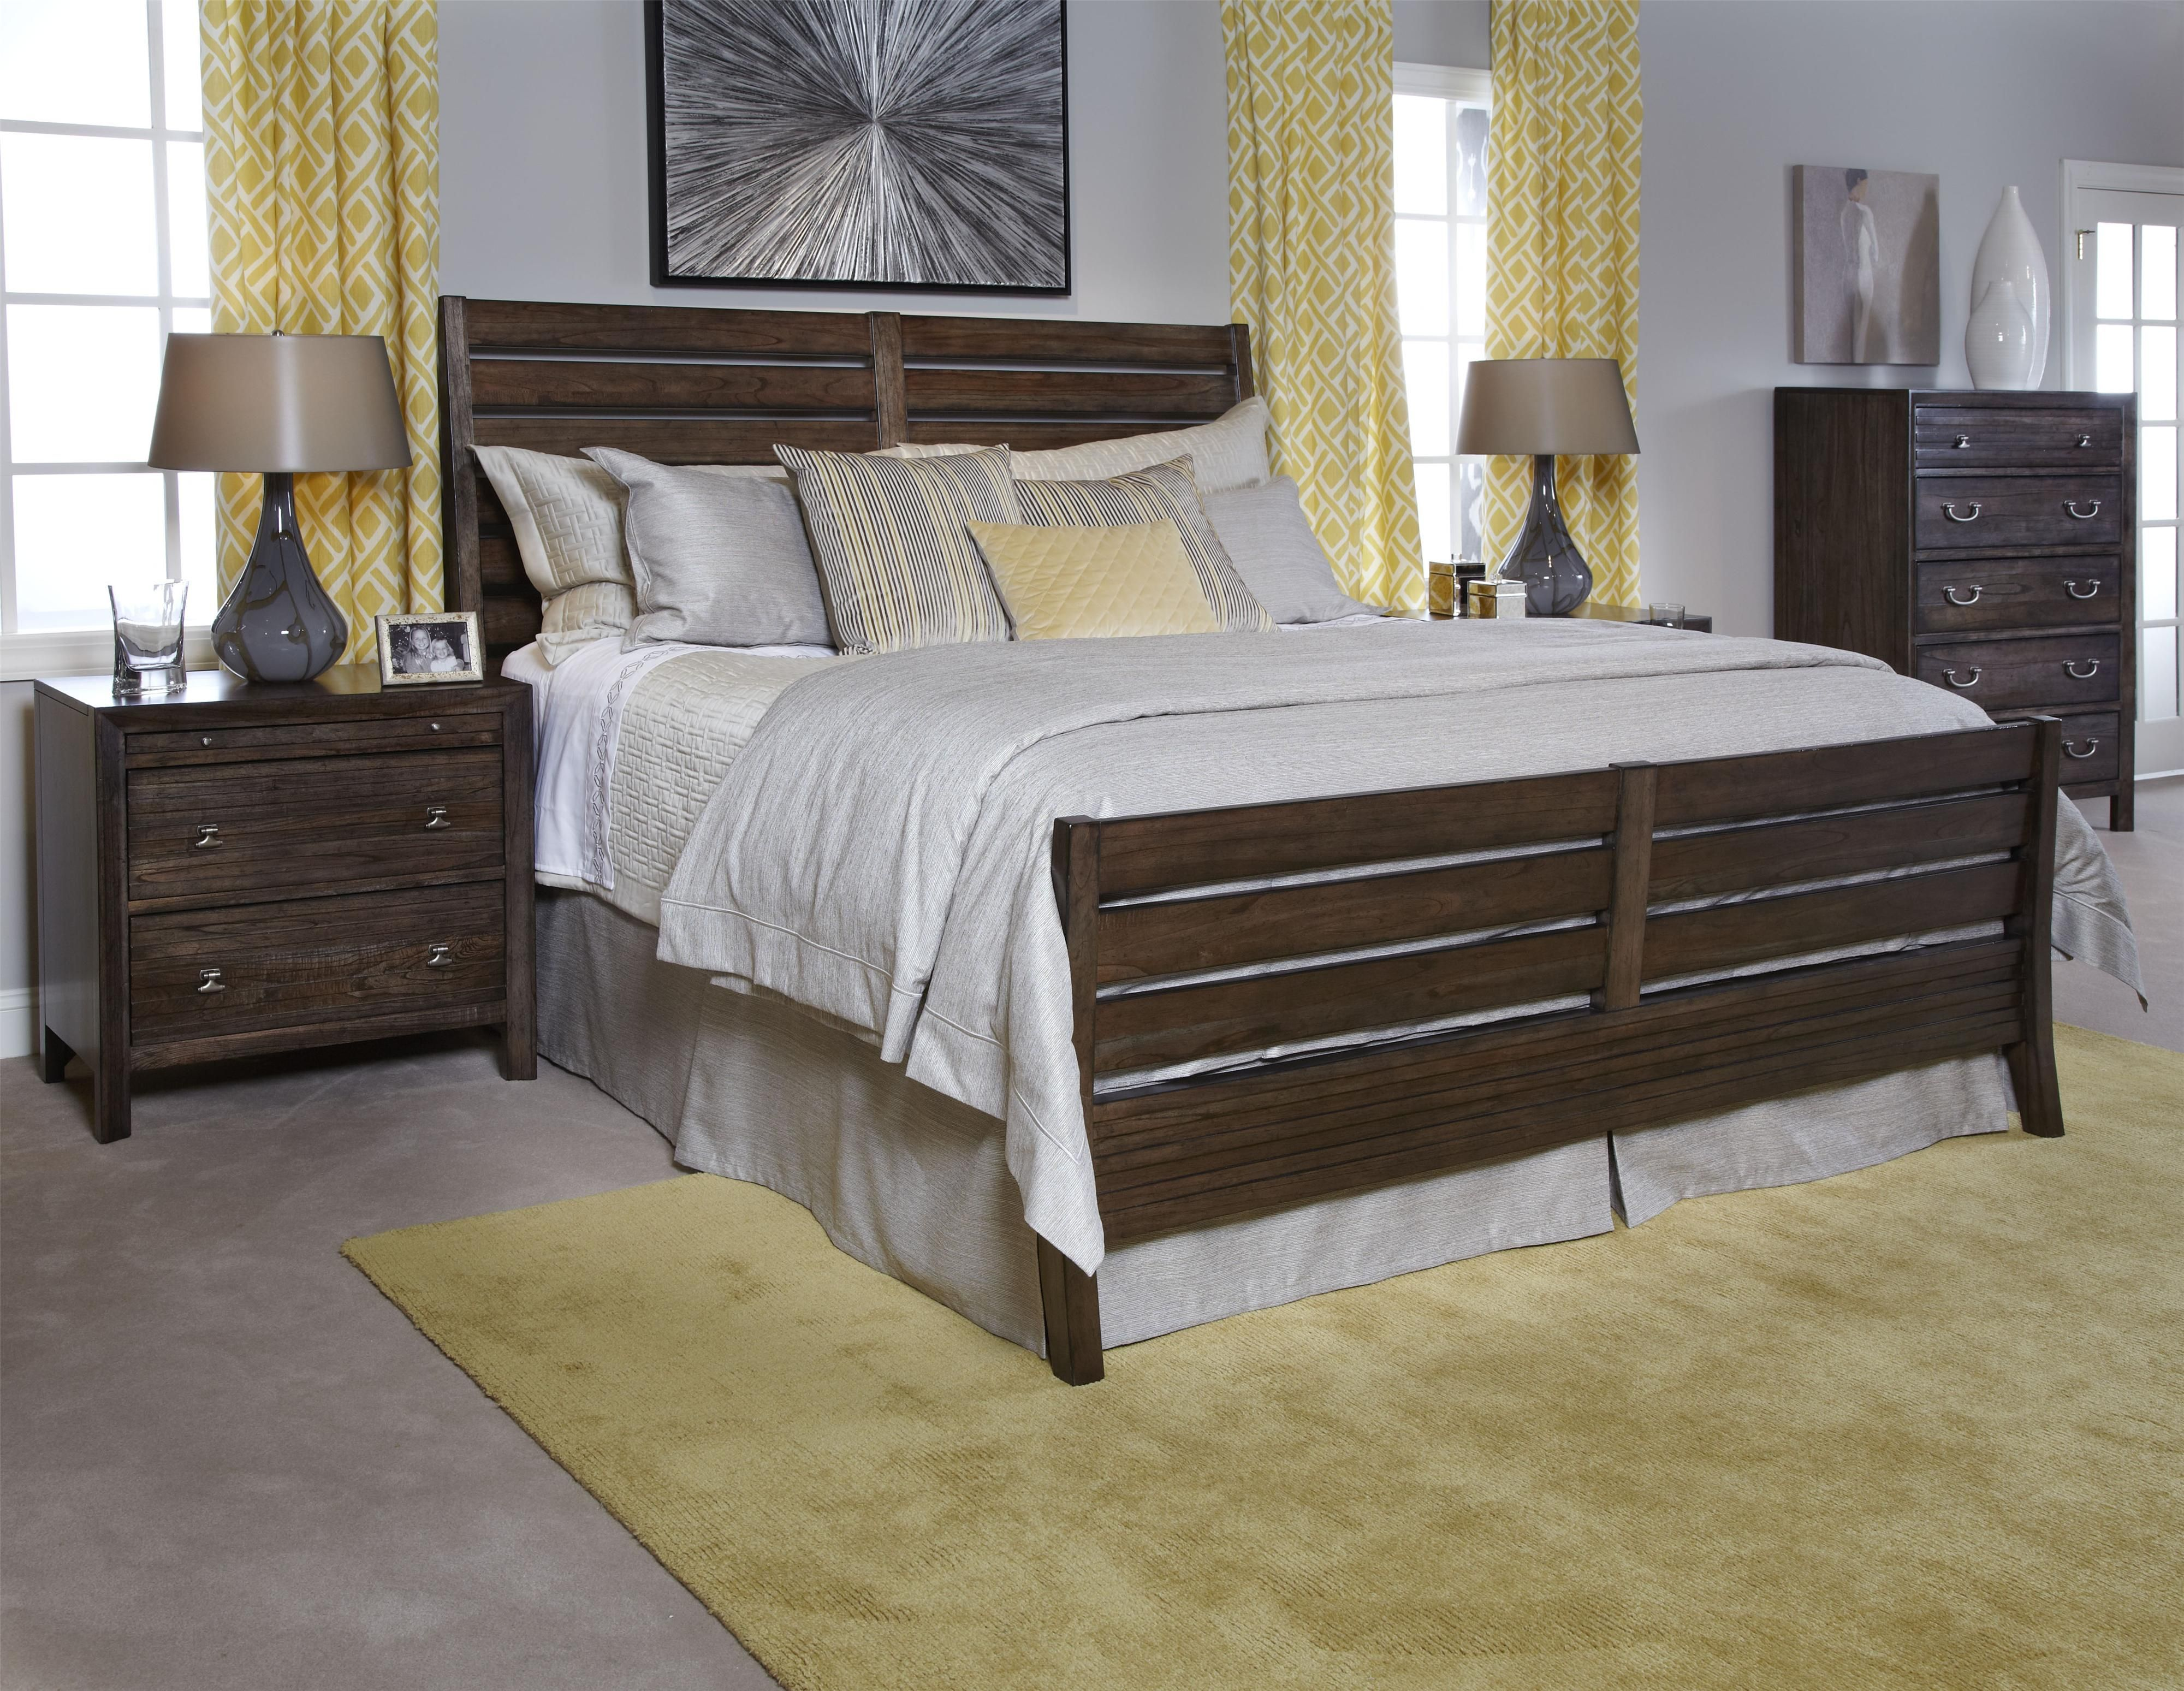 Sturlyn Queen Sleigh Bed by Kincaid Furniture Home